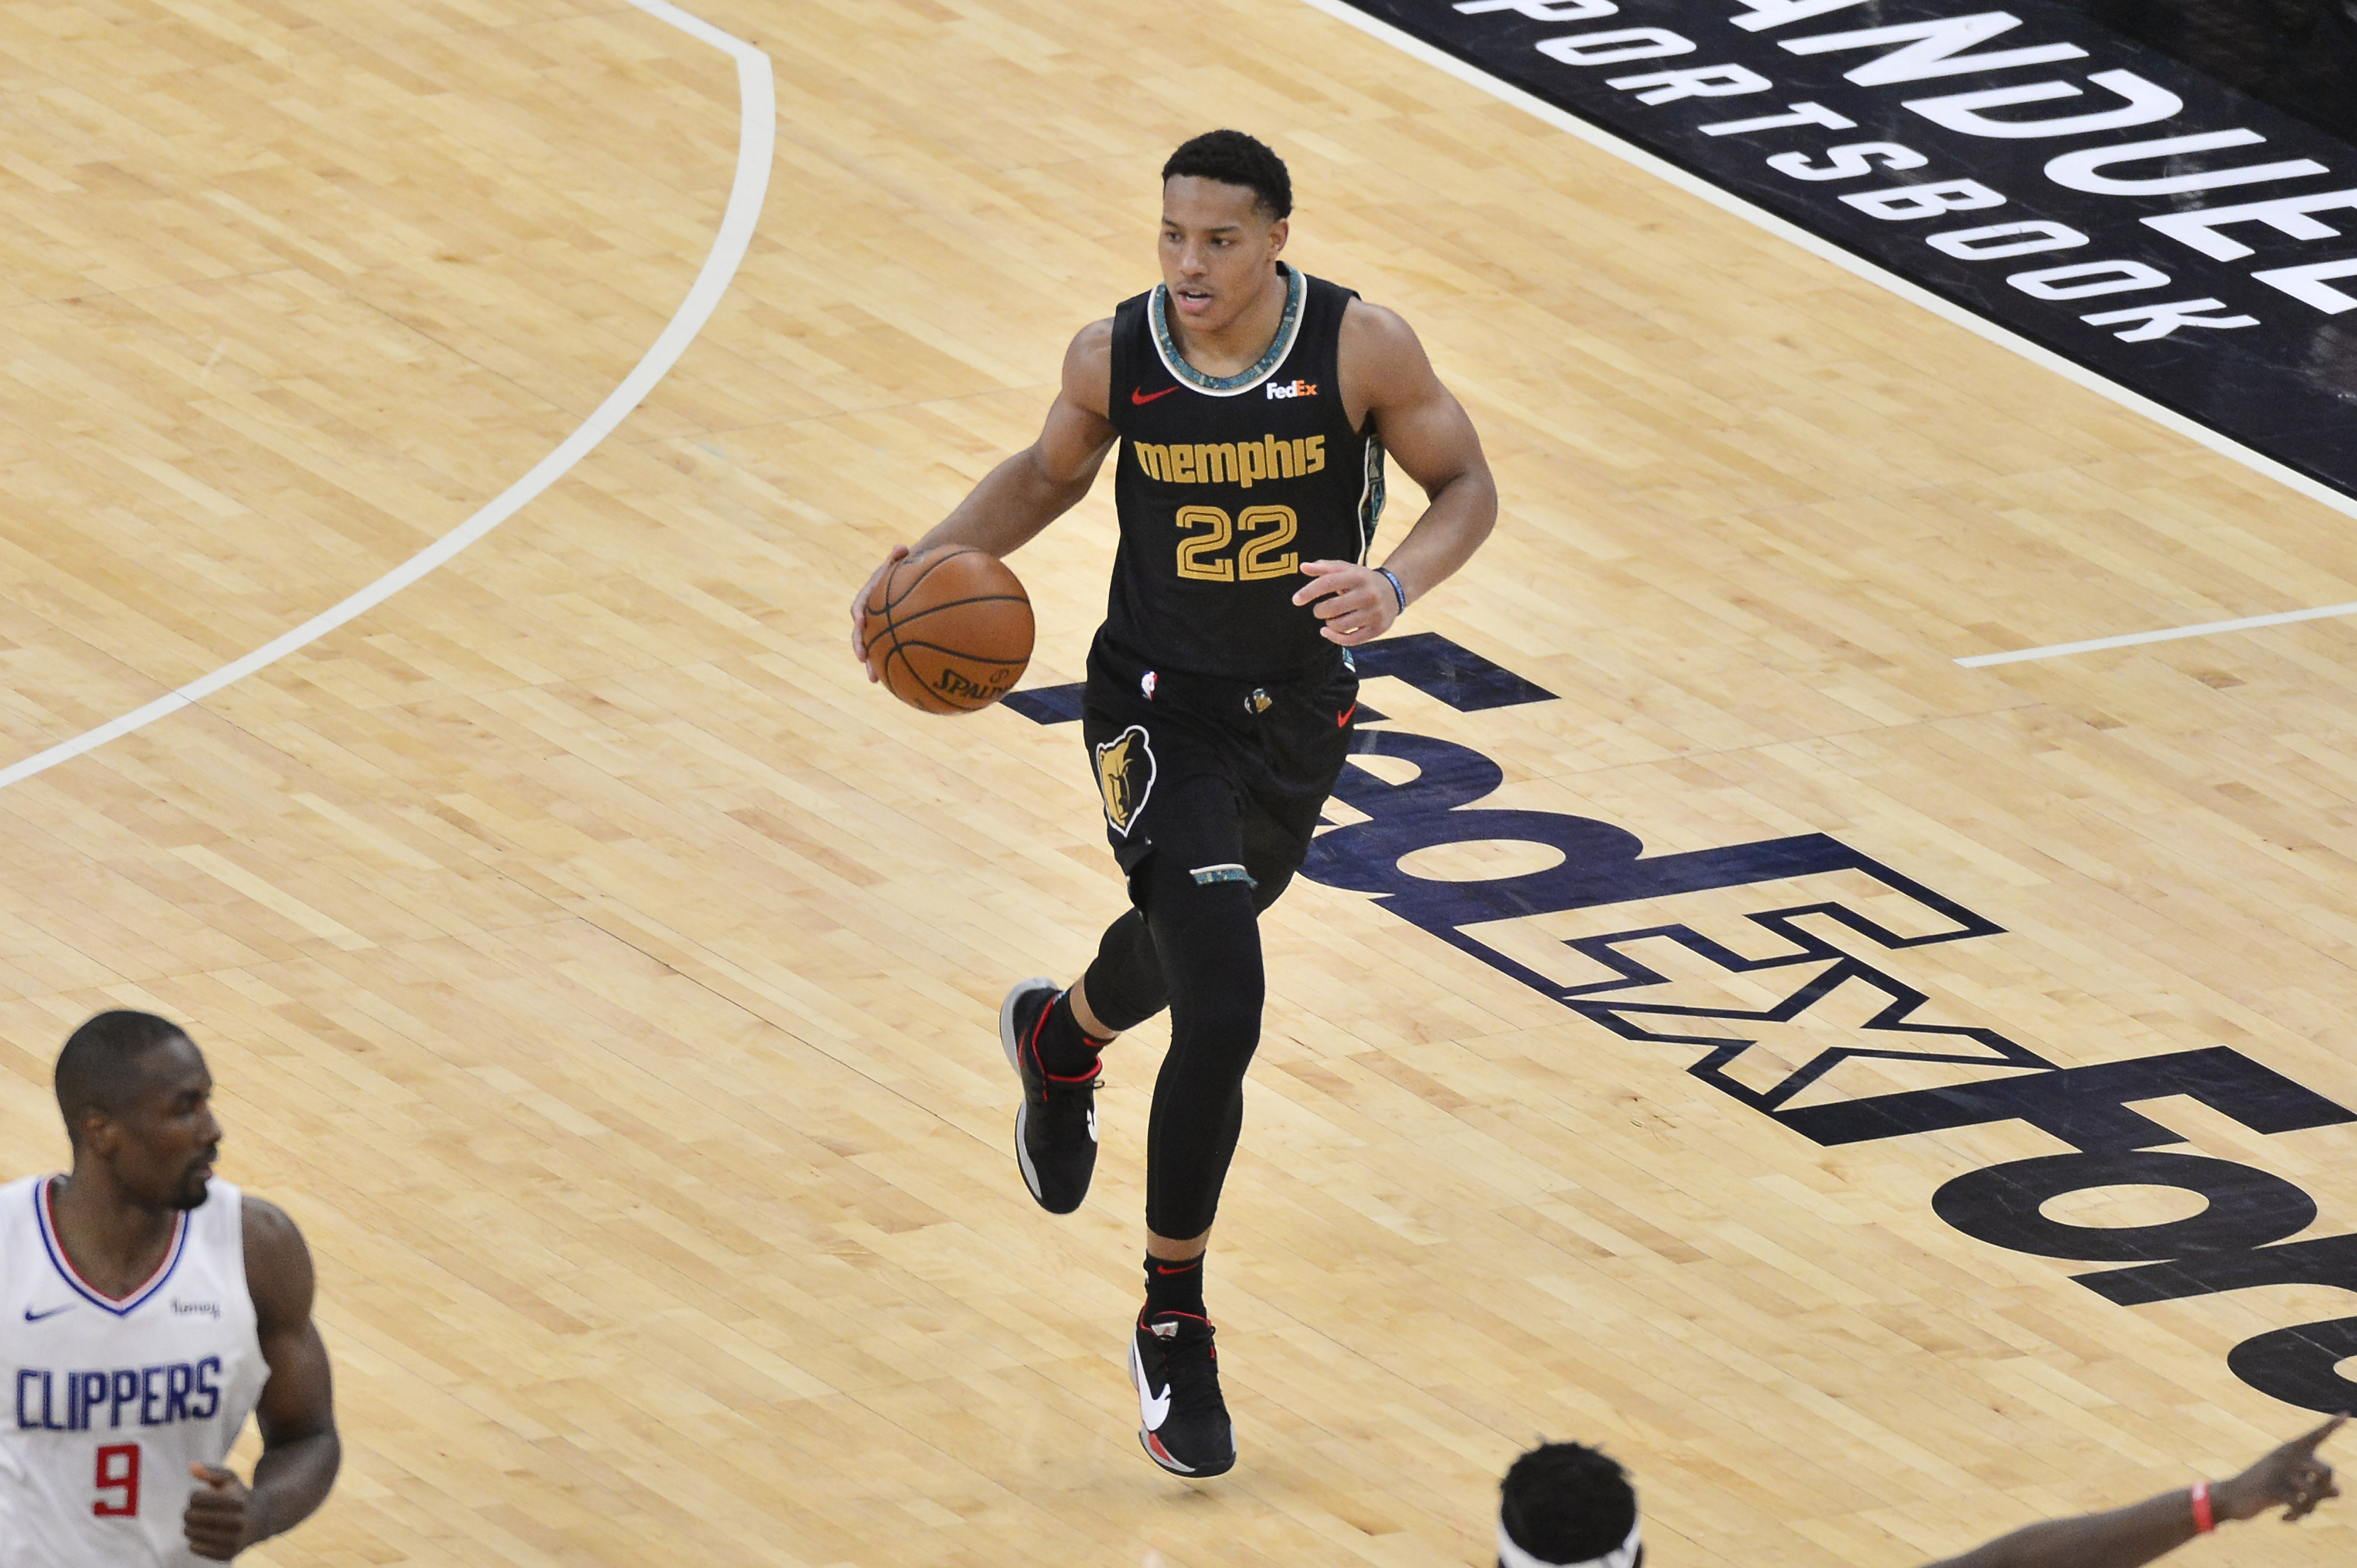 Memphis Grizzlies guard Desmond Bane (22) plays in the first half of an NBA basketball game against the Los Angeles Clippers Friday, Feb. 26, 2021, in Memphis, Tenn.